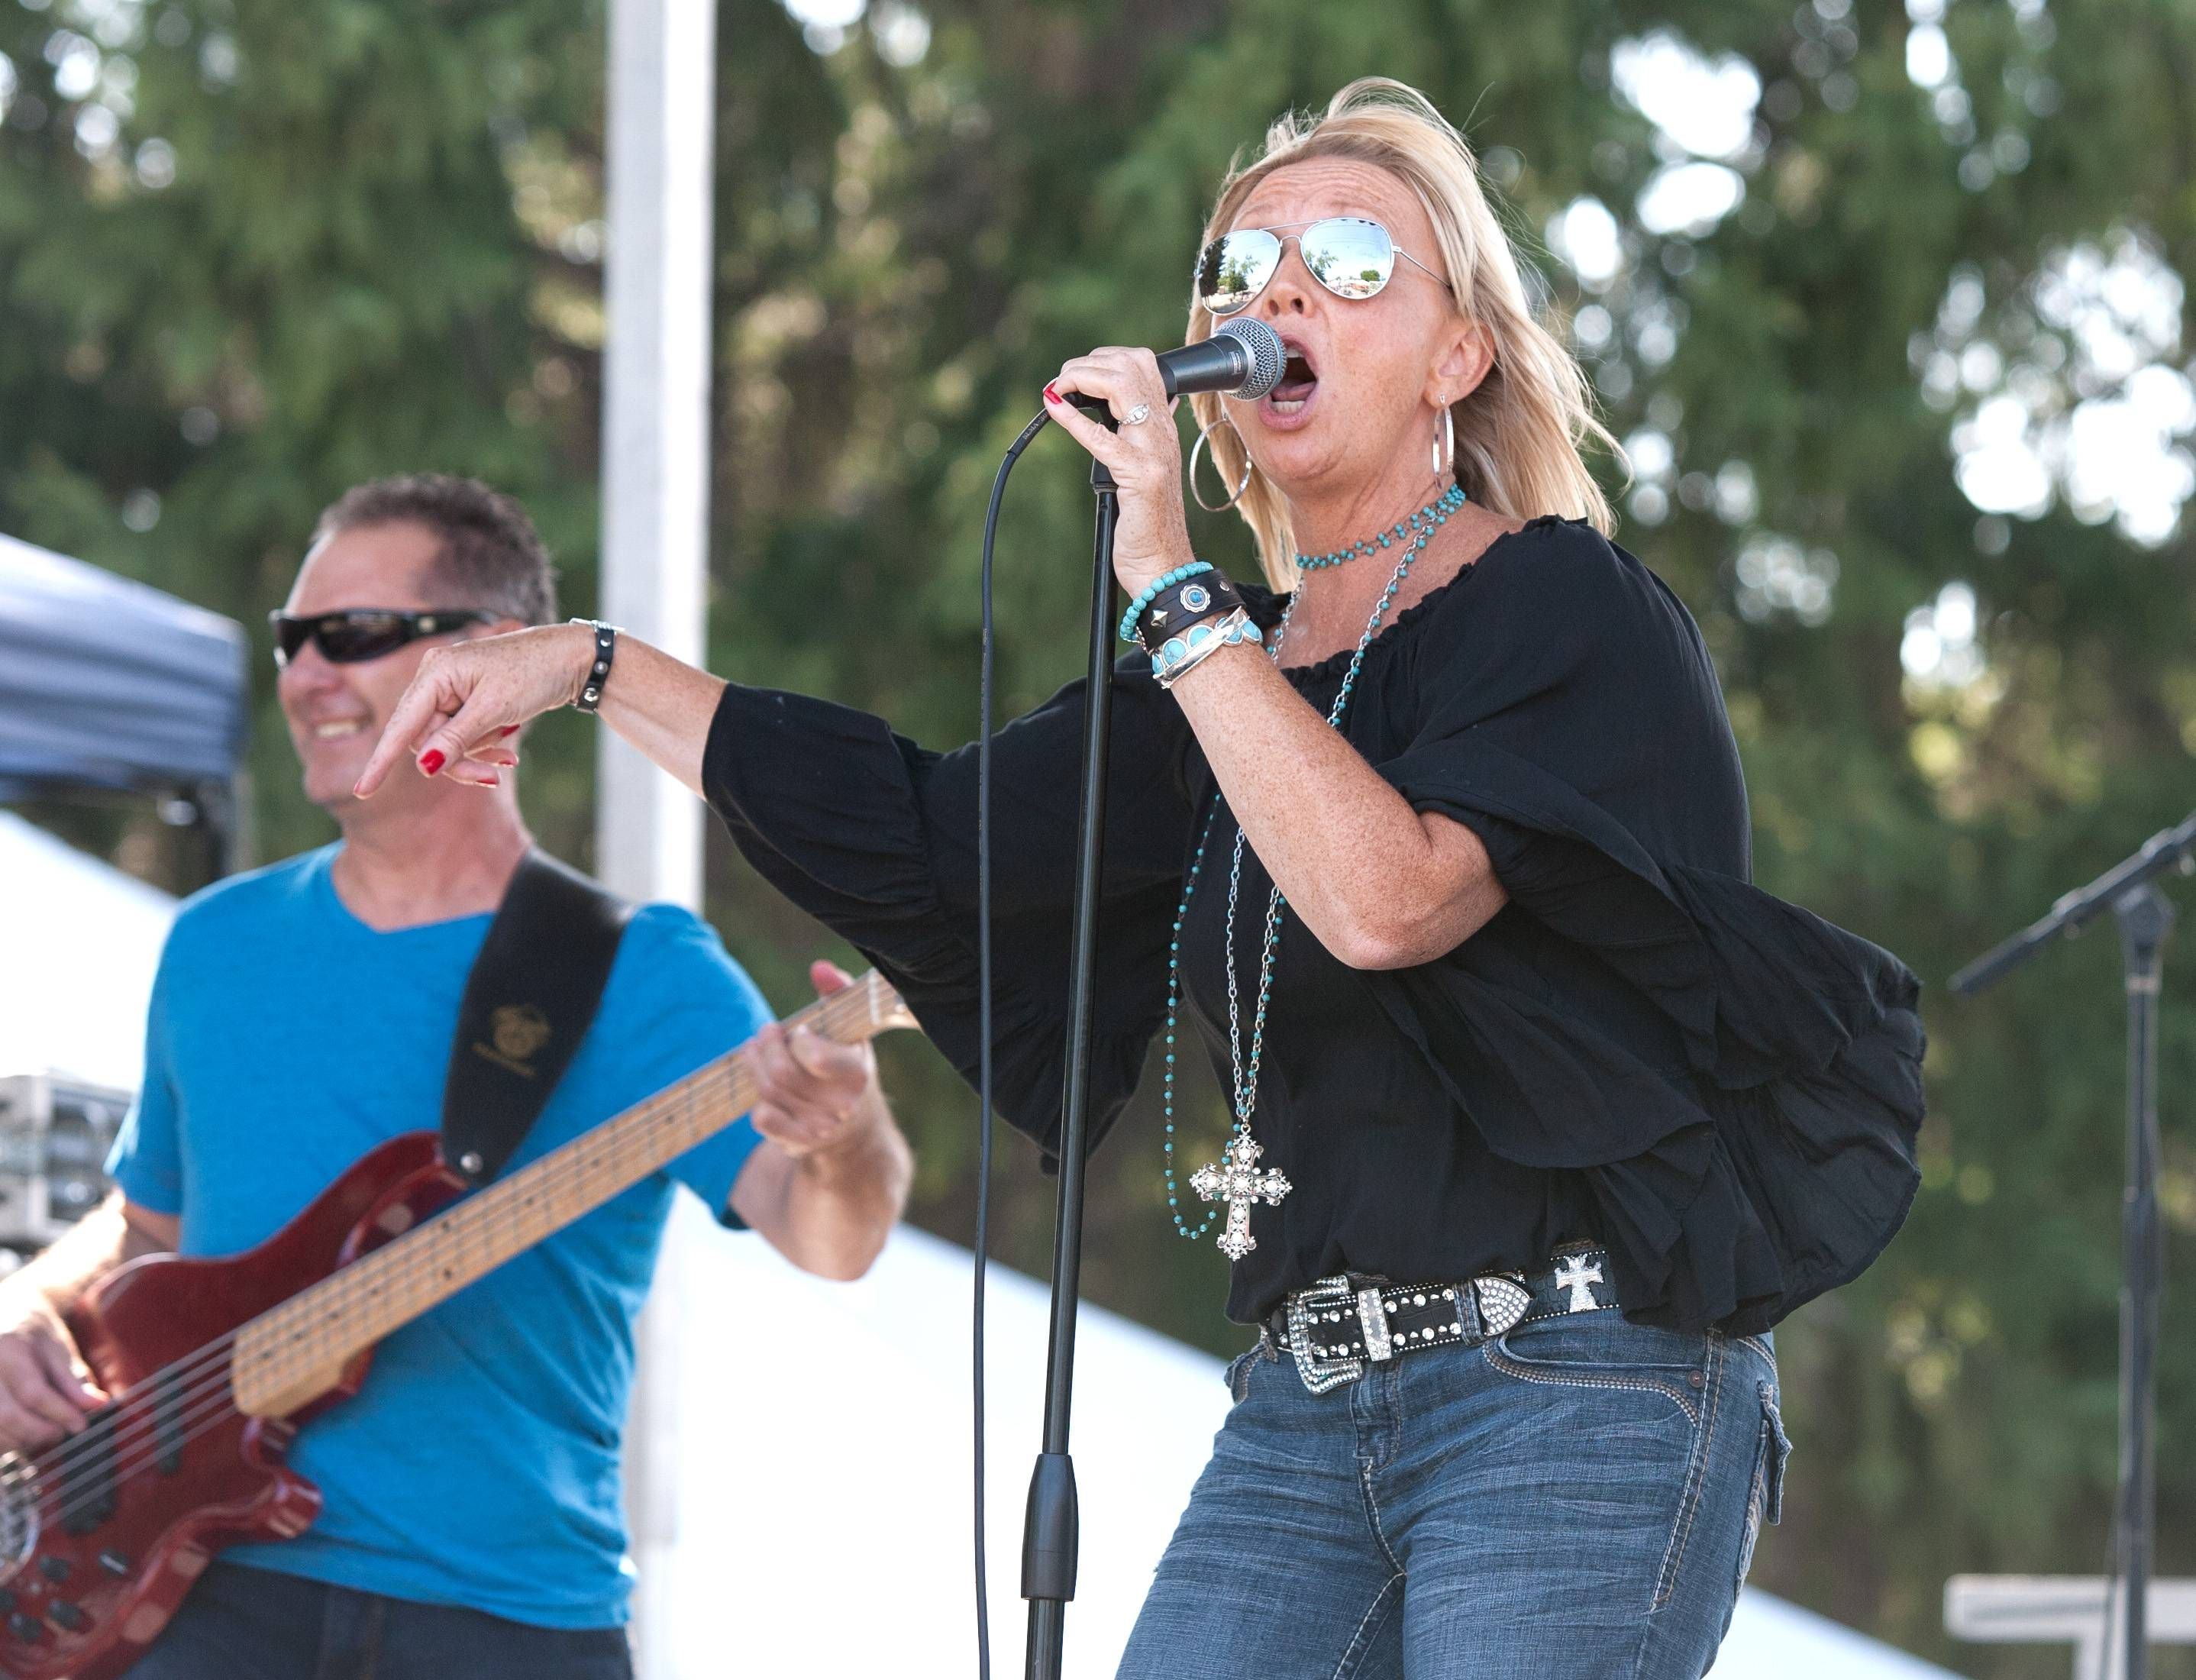 Kim Leffew of the Stilettos and Spurs Band entertains a Wood Dale Prairie Fest crowd with country-western music Saturday.